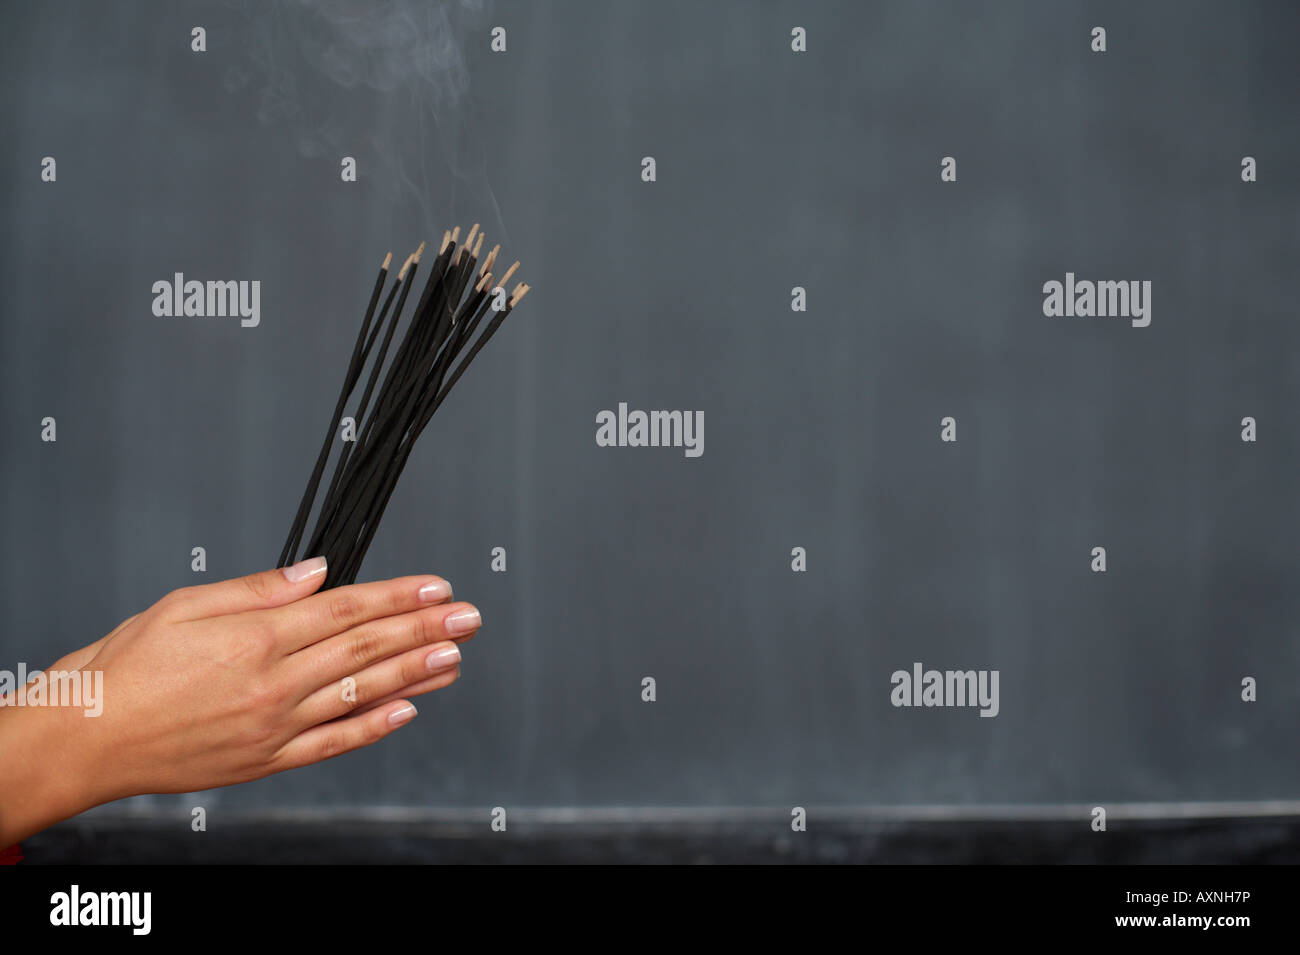 Female hands holding chopsticks, close-up - Stock Image